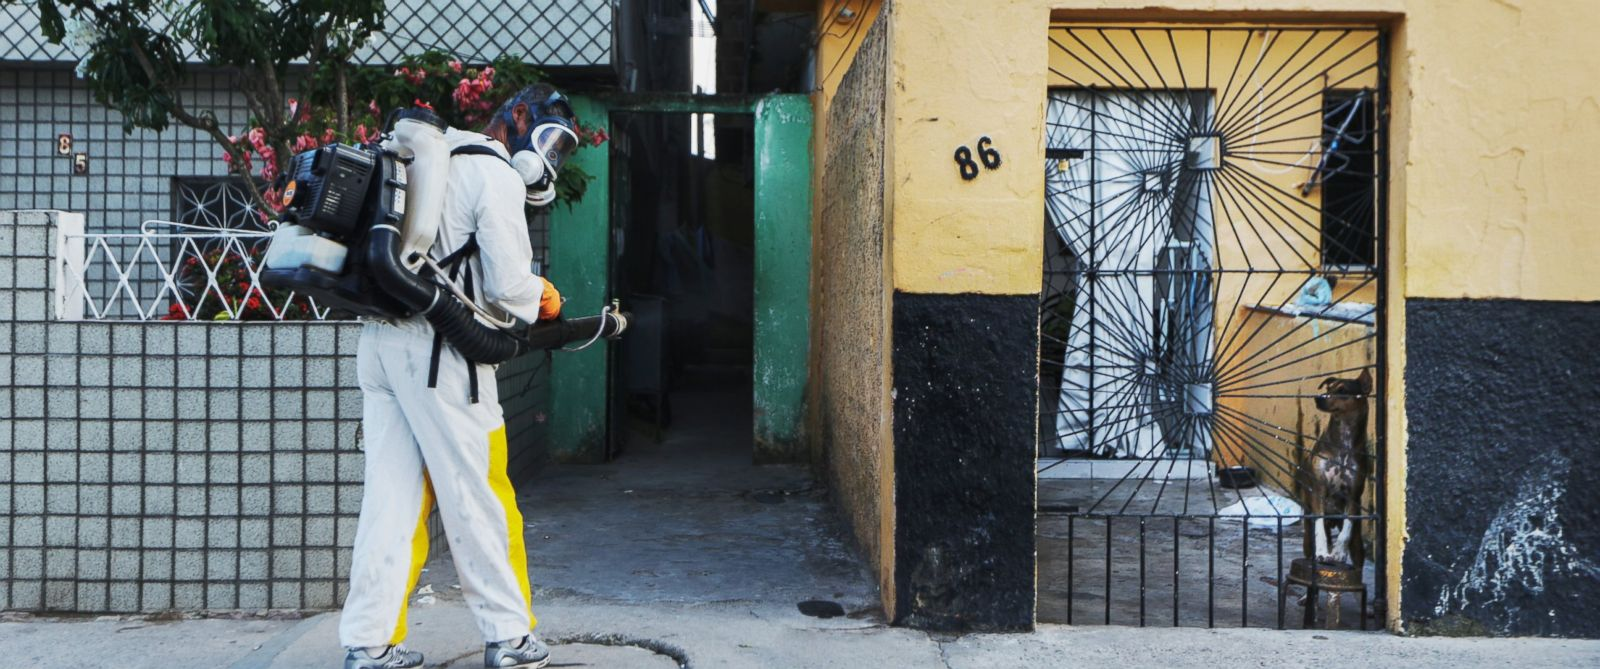 PHOTO: A dog looks on as a health worker fumigates in an attempt to eradicate the mosquito which transmits the Zika virus, Jan. 28, 2016, in Recife, Brazil.